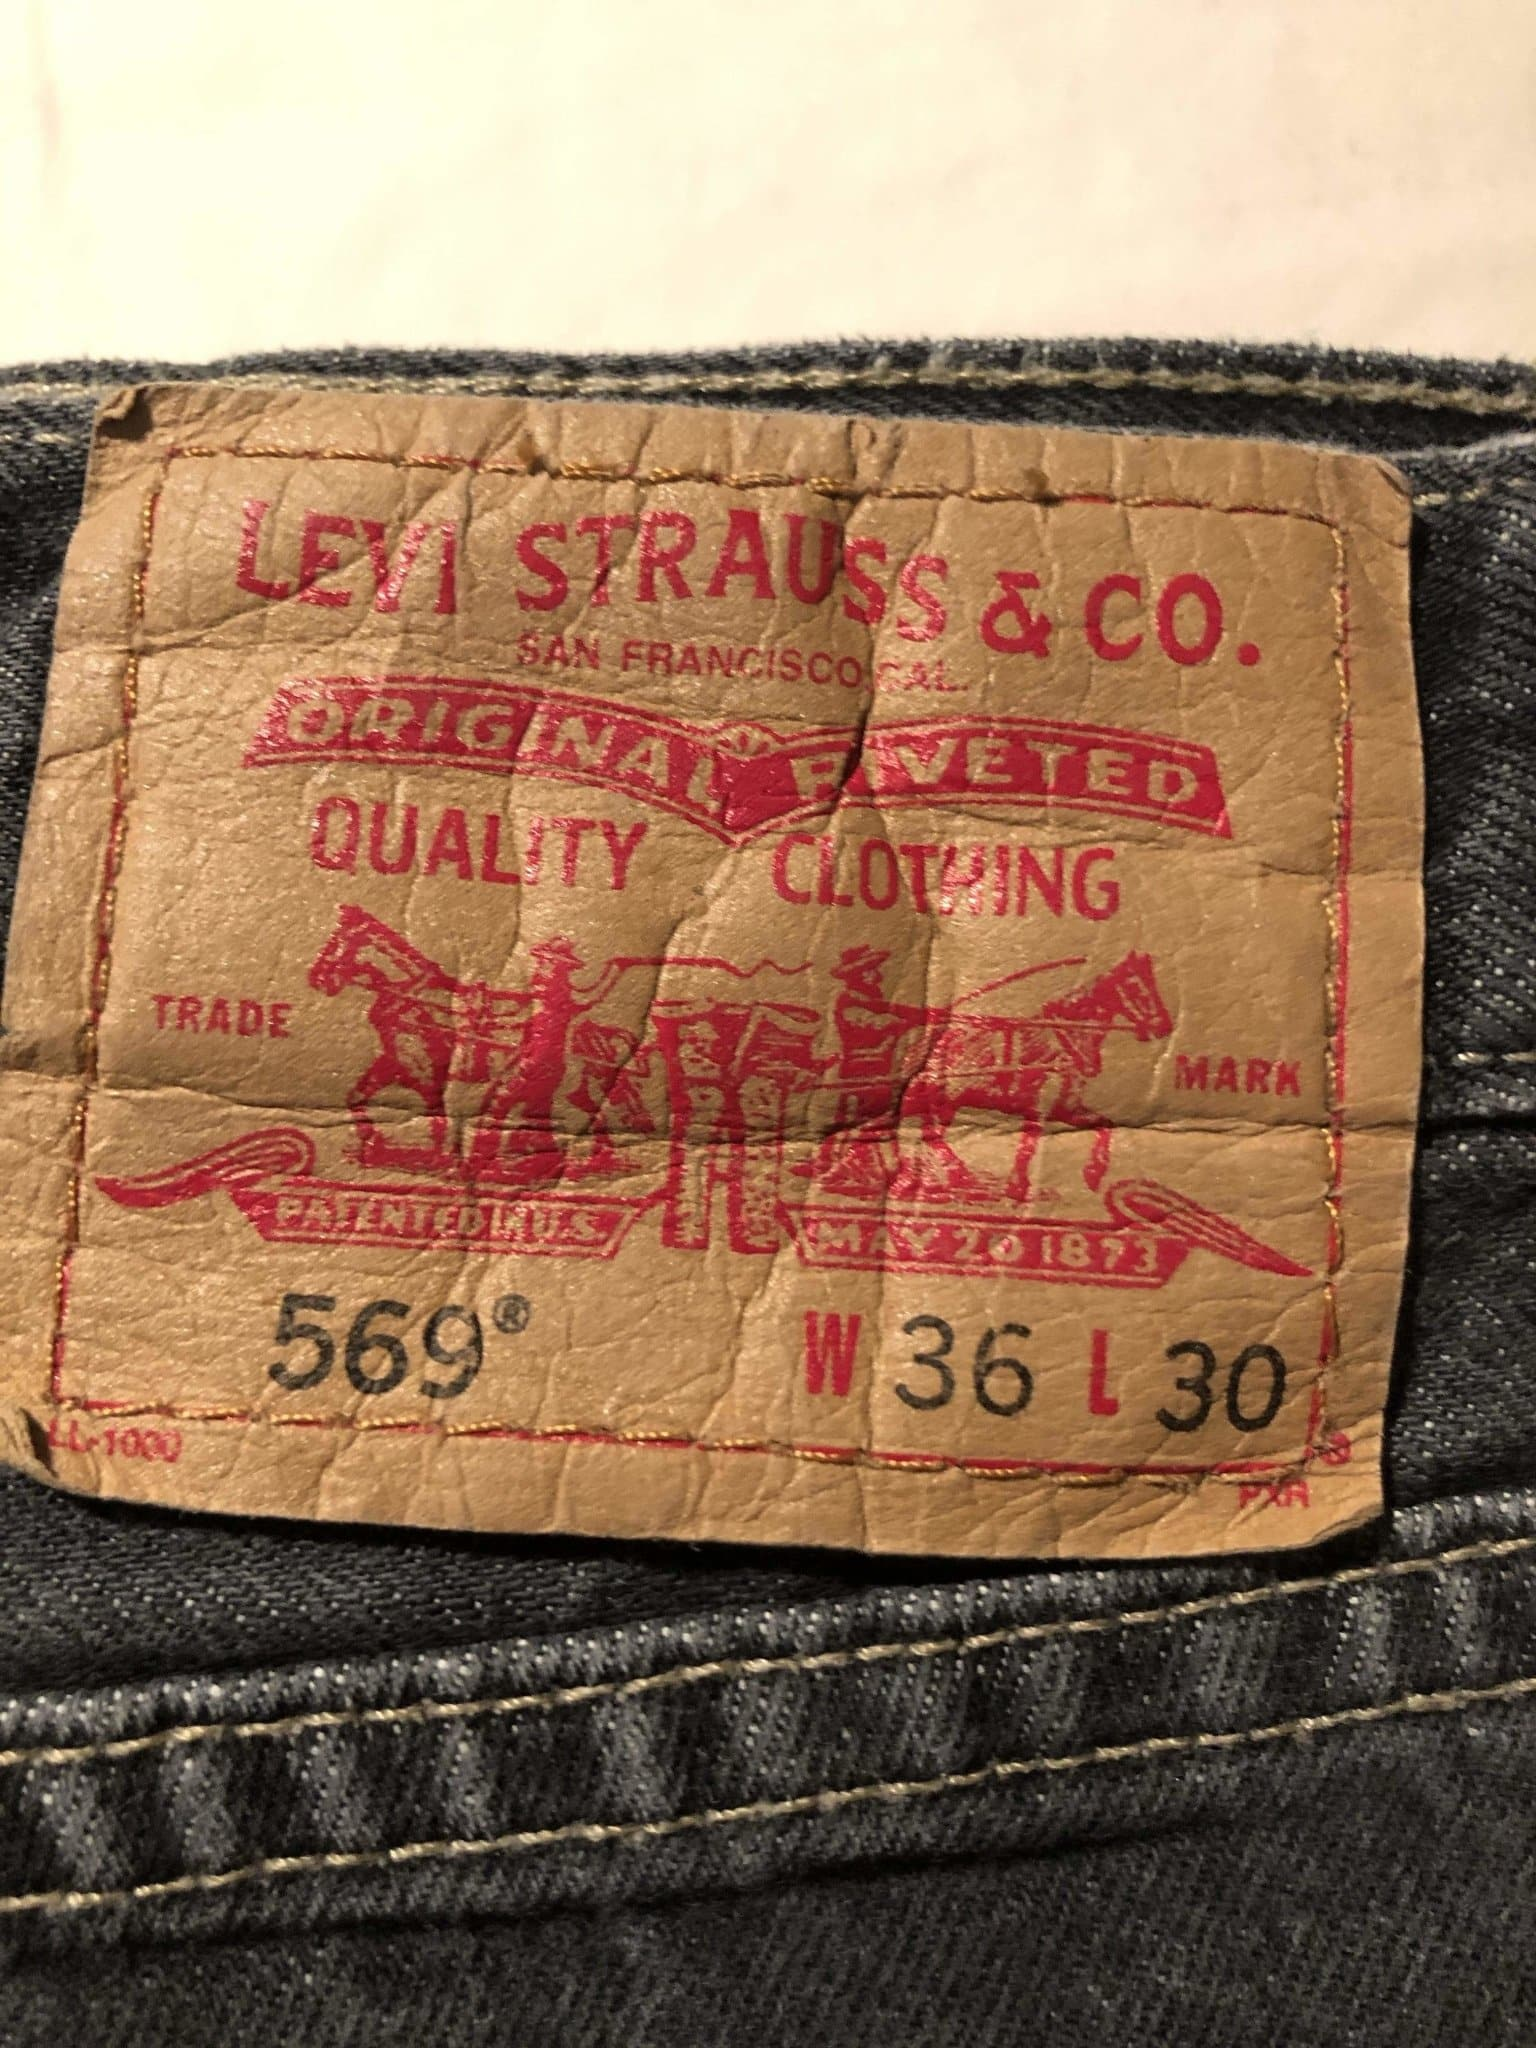 Levi's 569 Jeans W36 L30 (LV13) - Discounted Deals UK